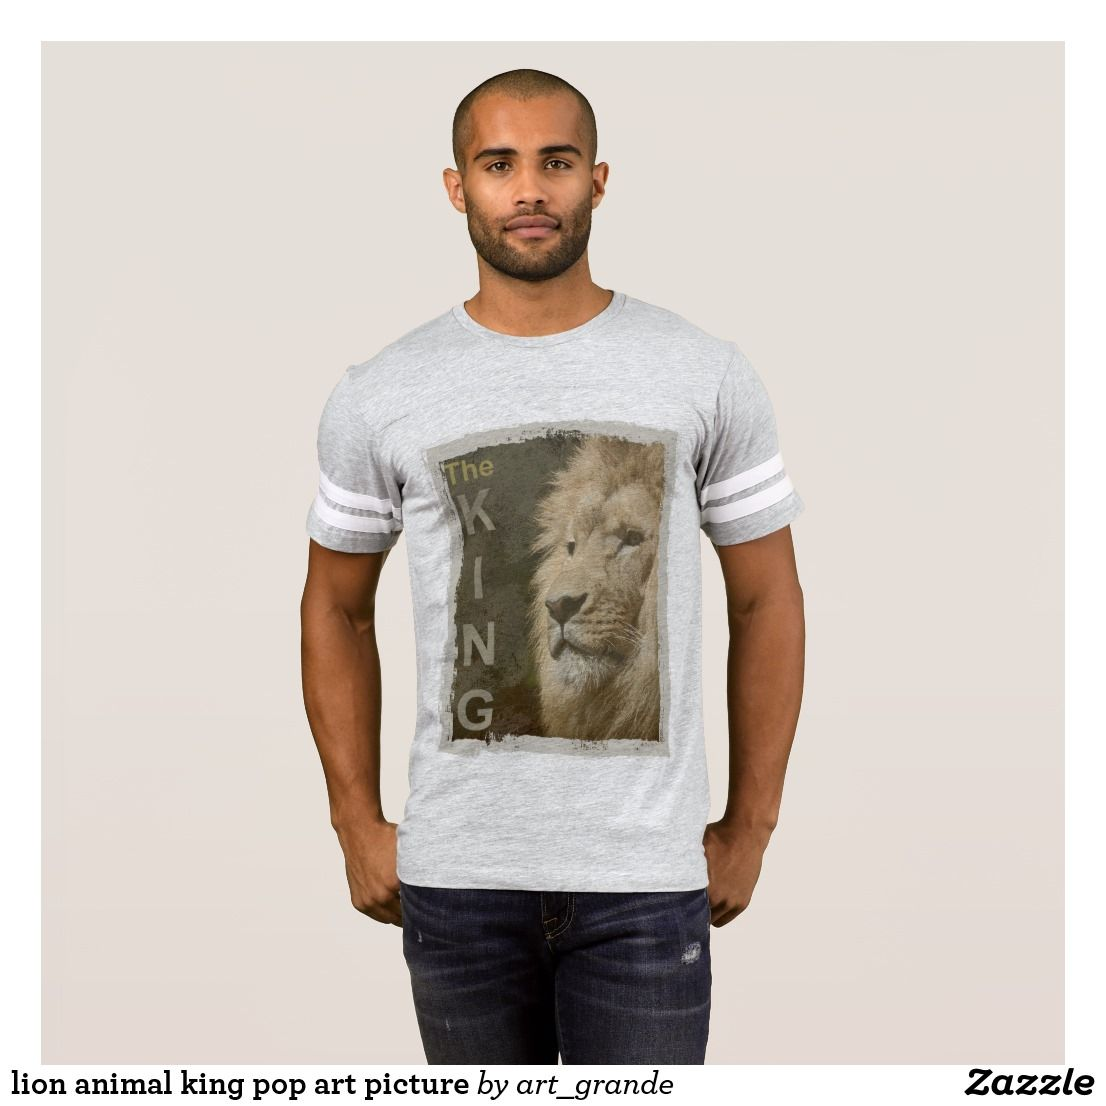 lion animal king pop art picture T-Shirt